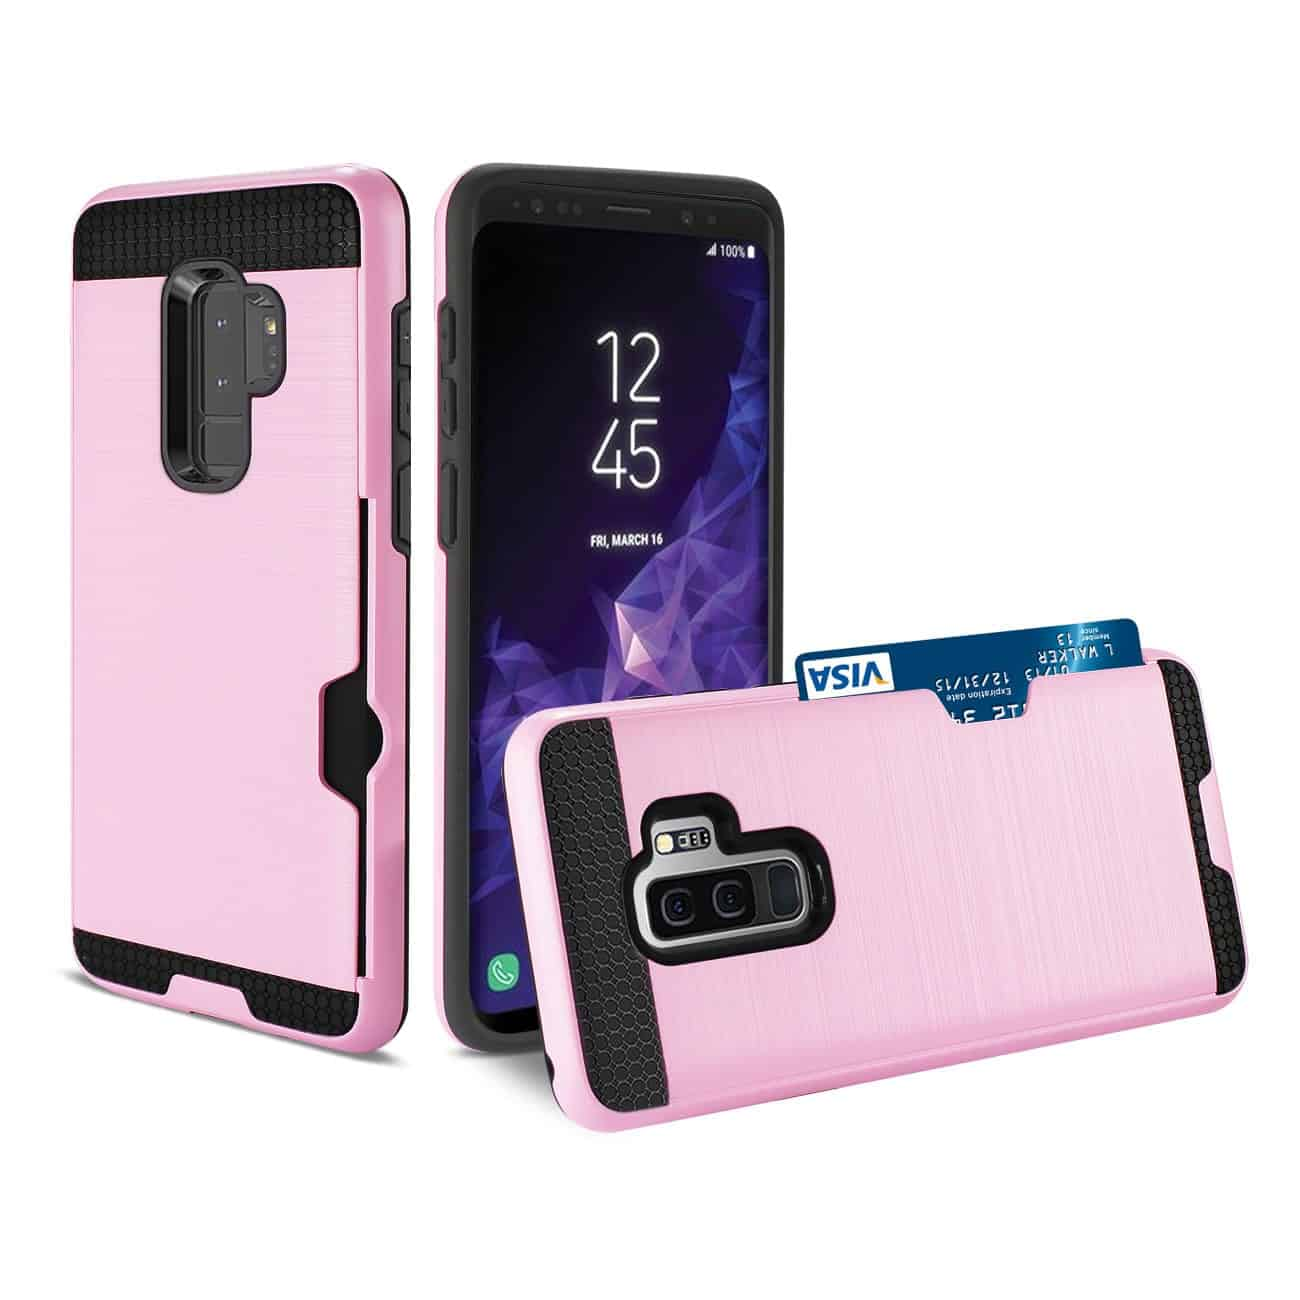 Samsung Galaxy S9 Plus Slim Armor Hybrid Case With Card Holder In Pink